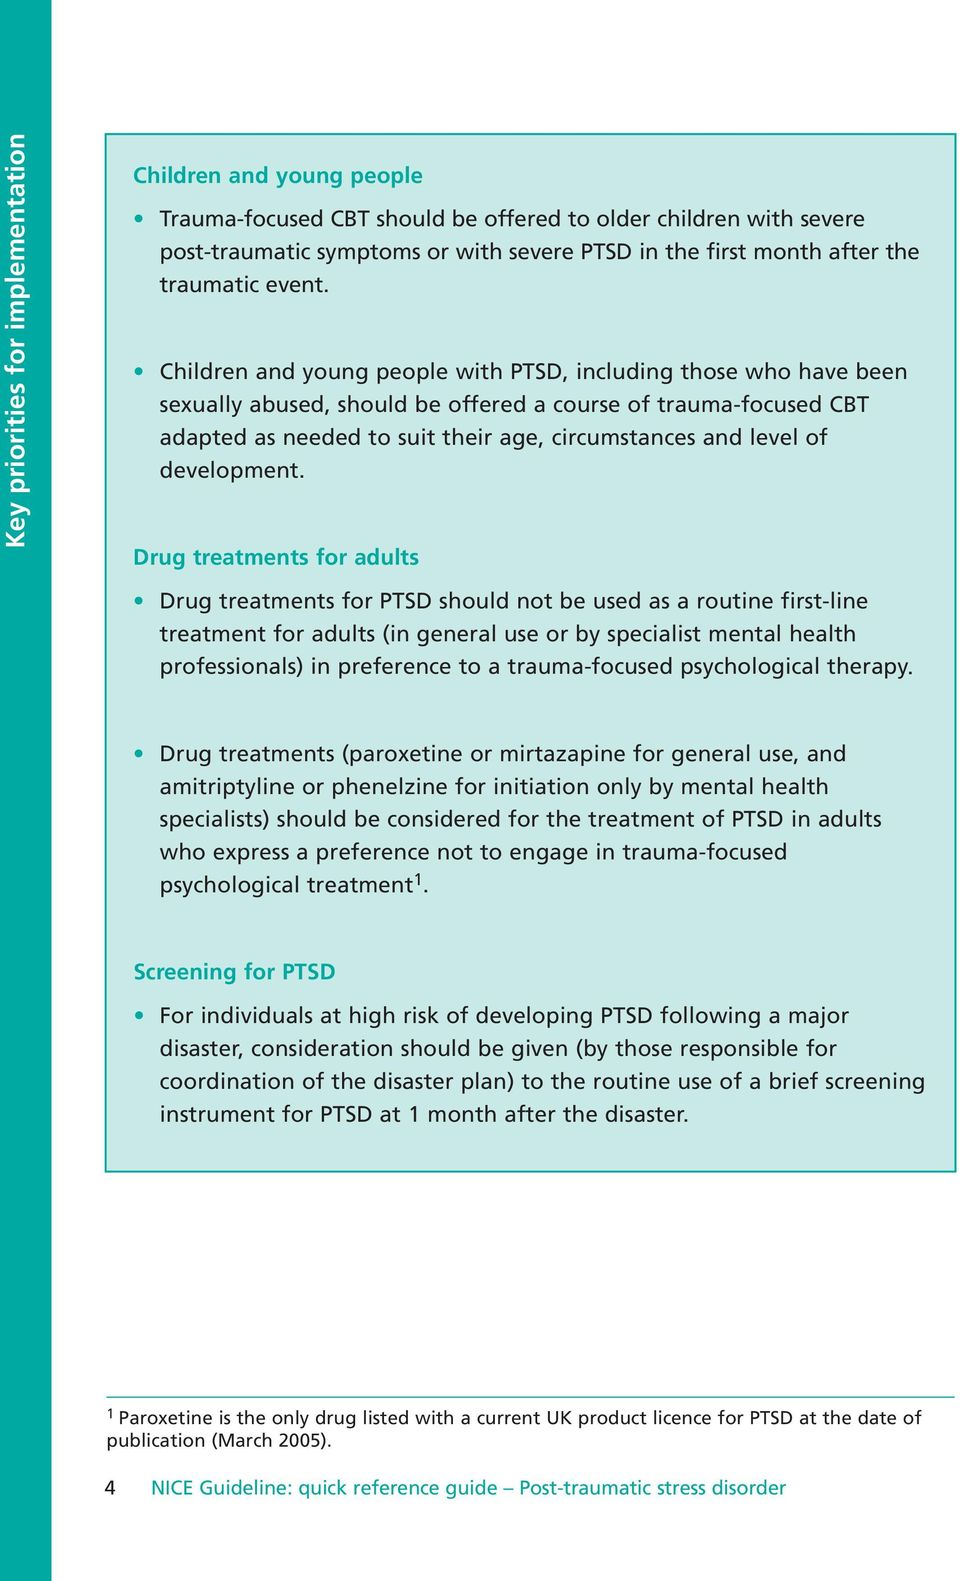 Children and young people with PTSD, including those who have been sexually abused, should be offered a course of trauma-focused CBT adapted as needed to suit their age, circumstances and level of